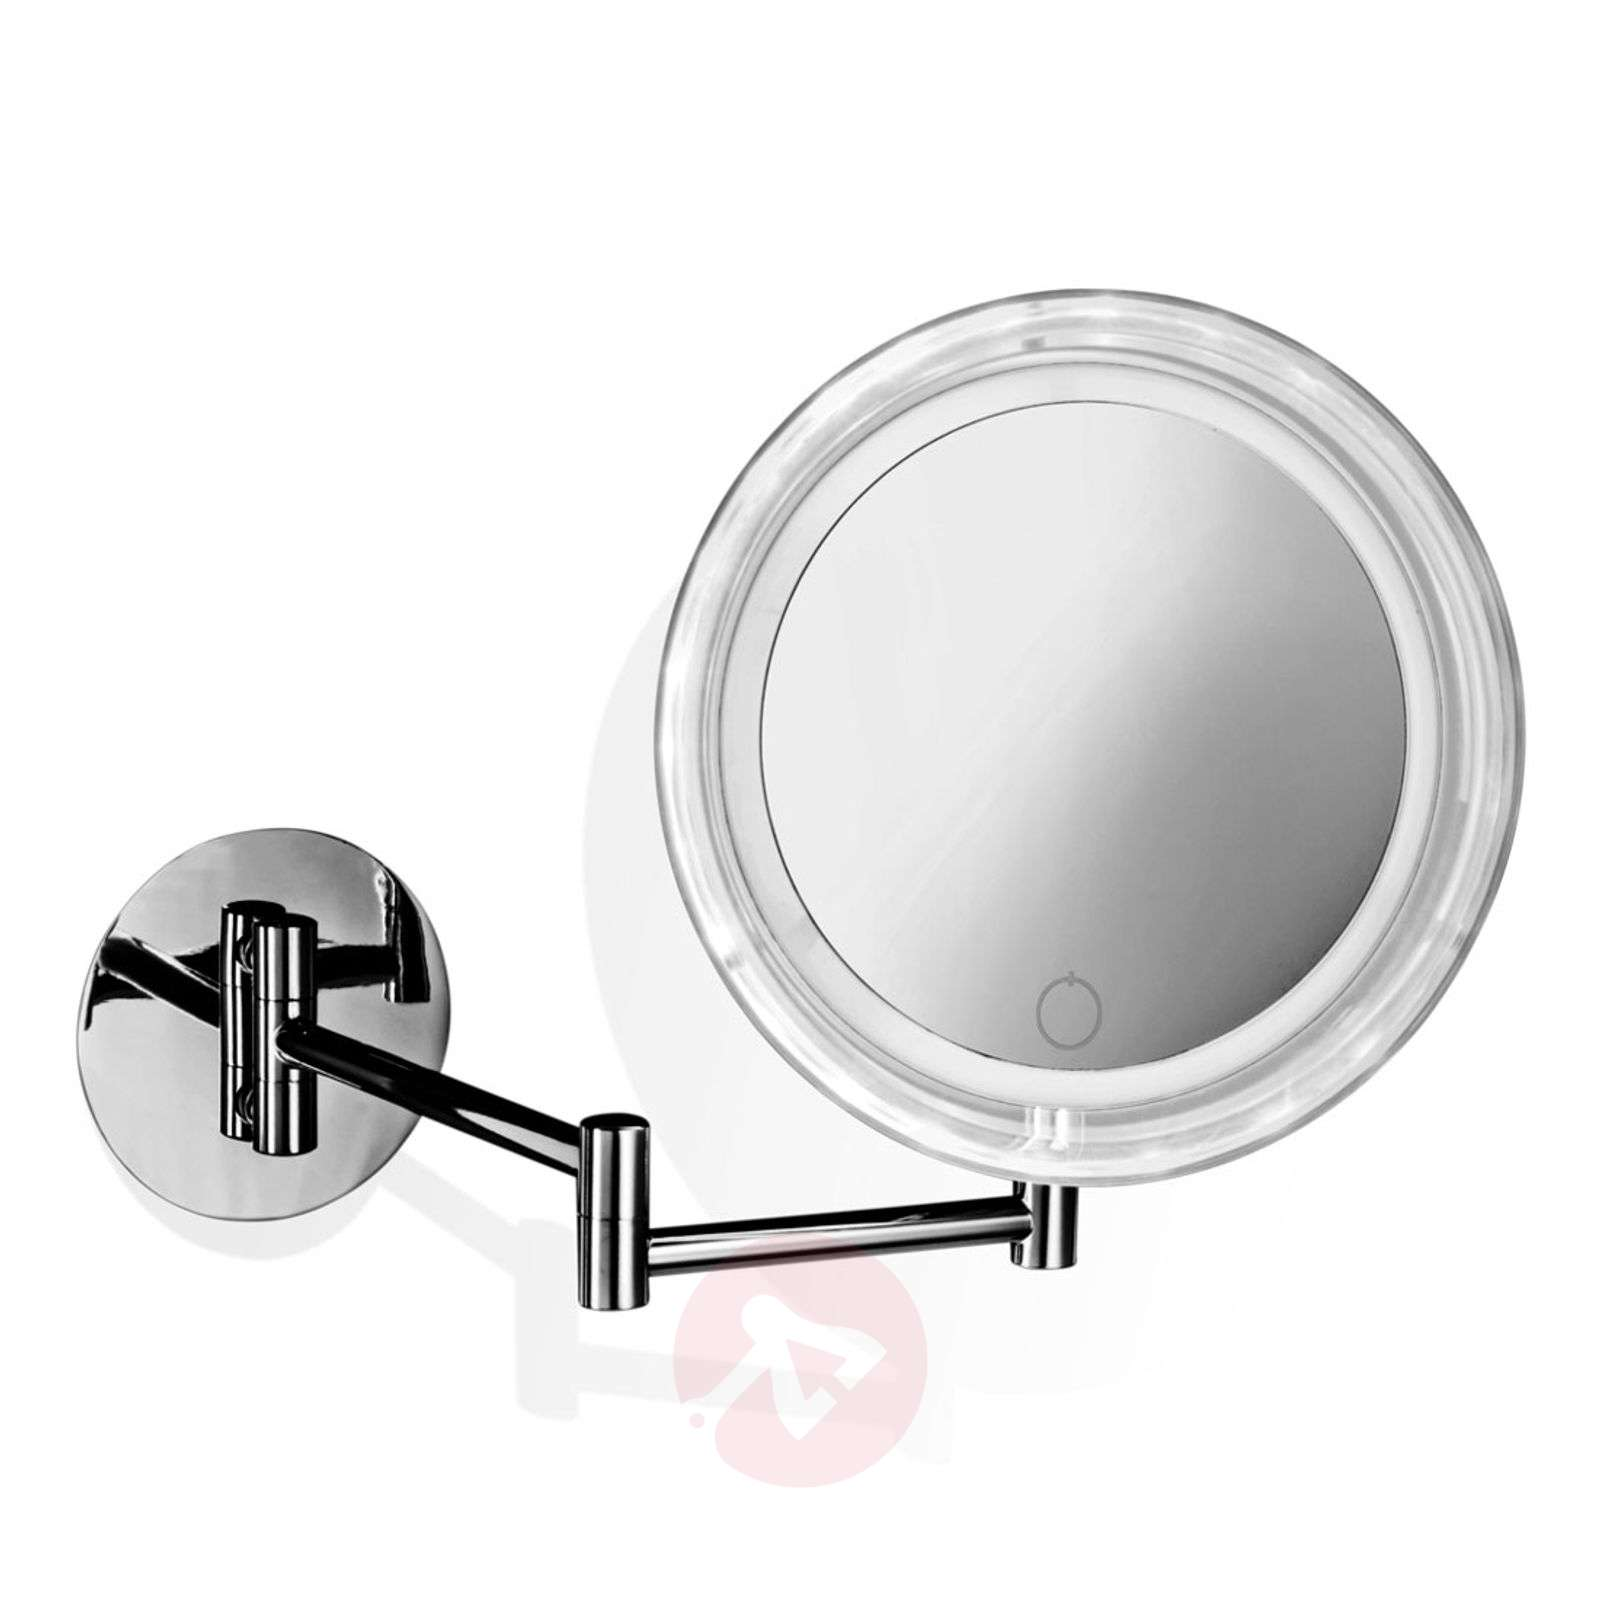 Decor Walther BS 16 Touch miroir mural LED rond-2504974-01